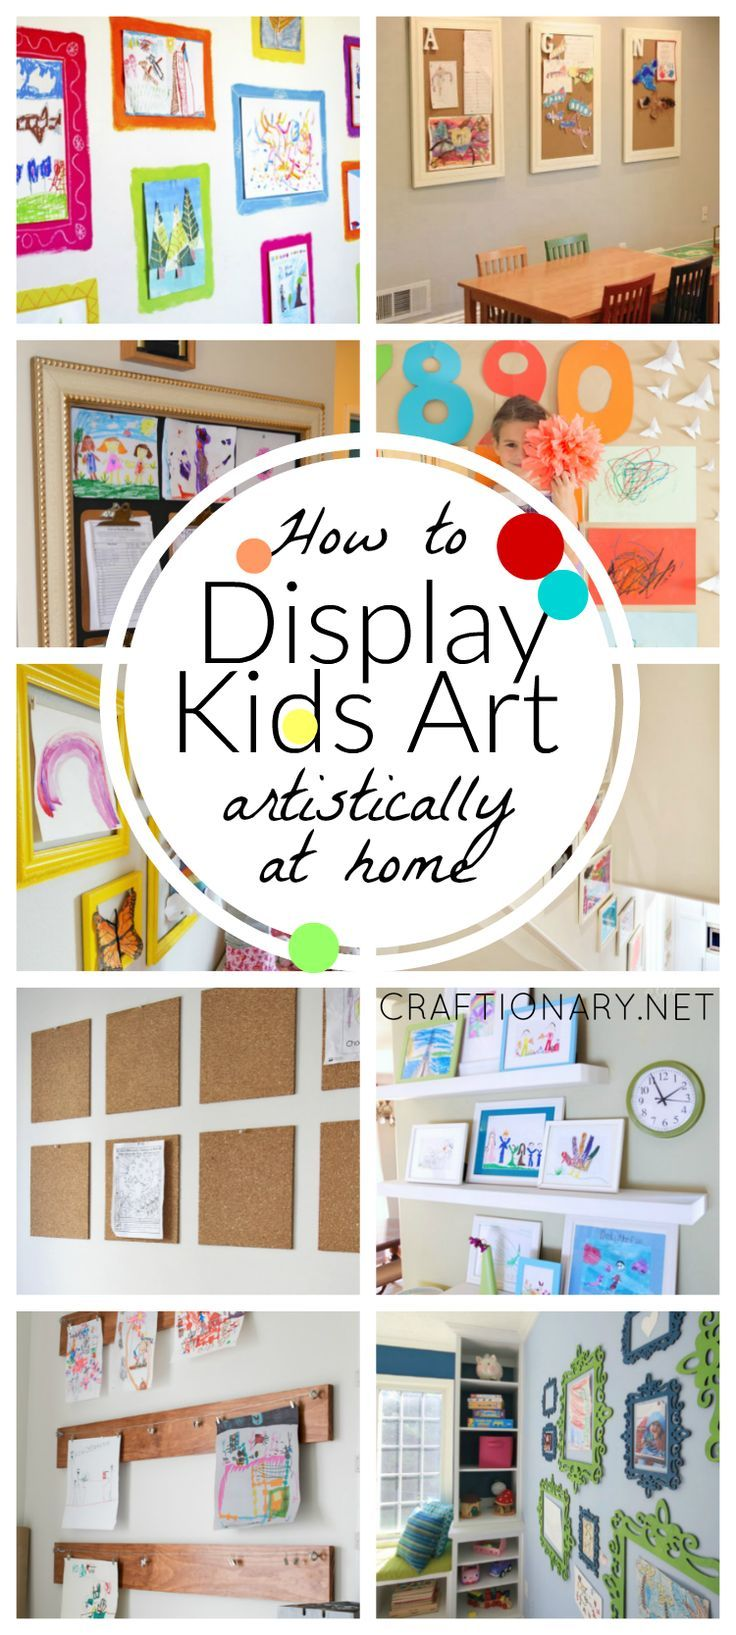 Great ideas for displaying kids art at home. I tend to throw away as much as I can, but I know the kids love to see their art hanging up in the house.